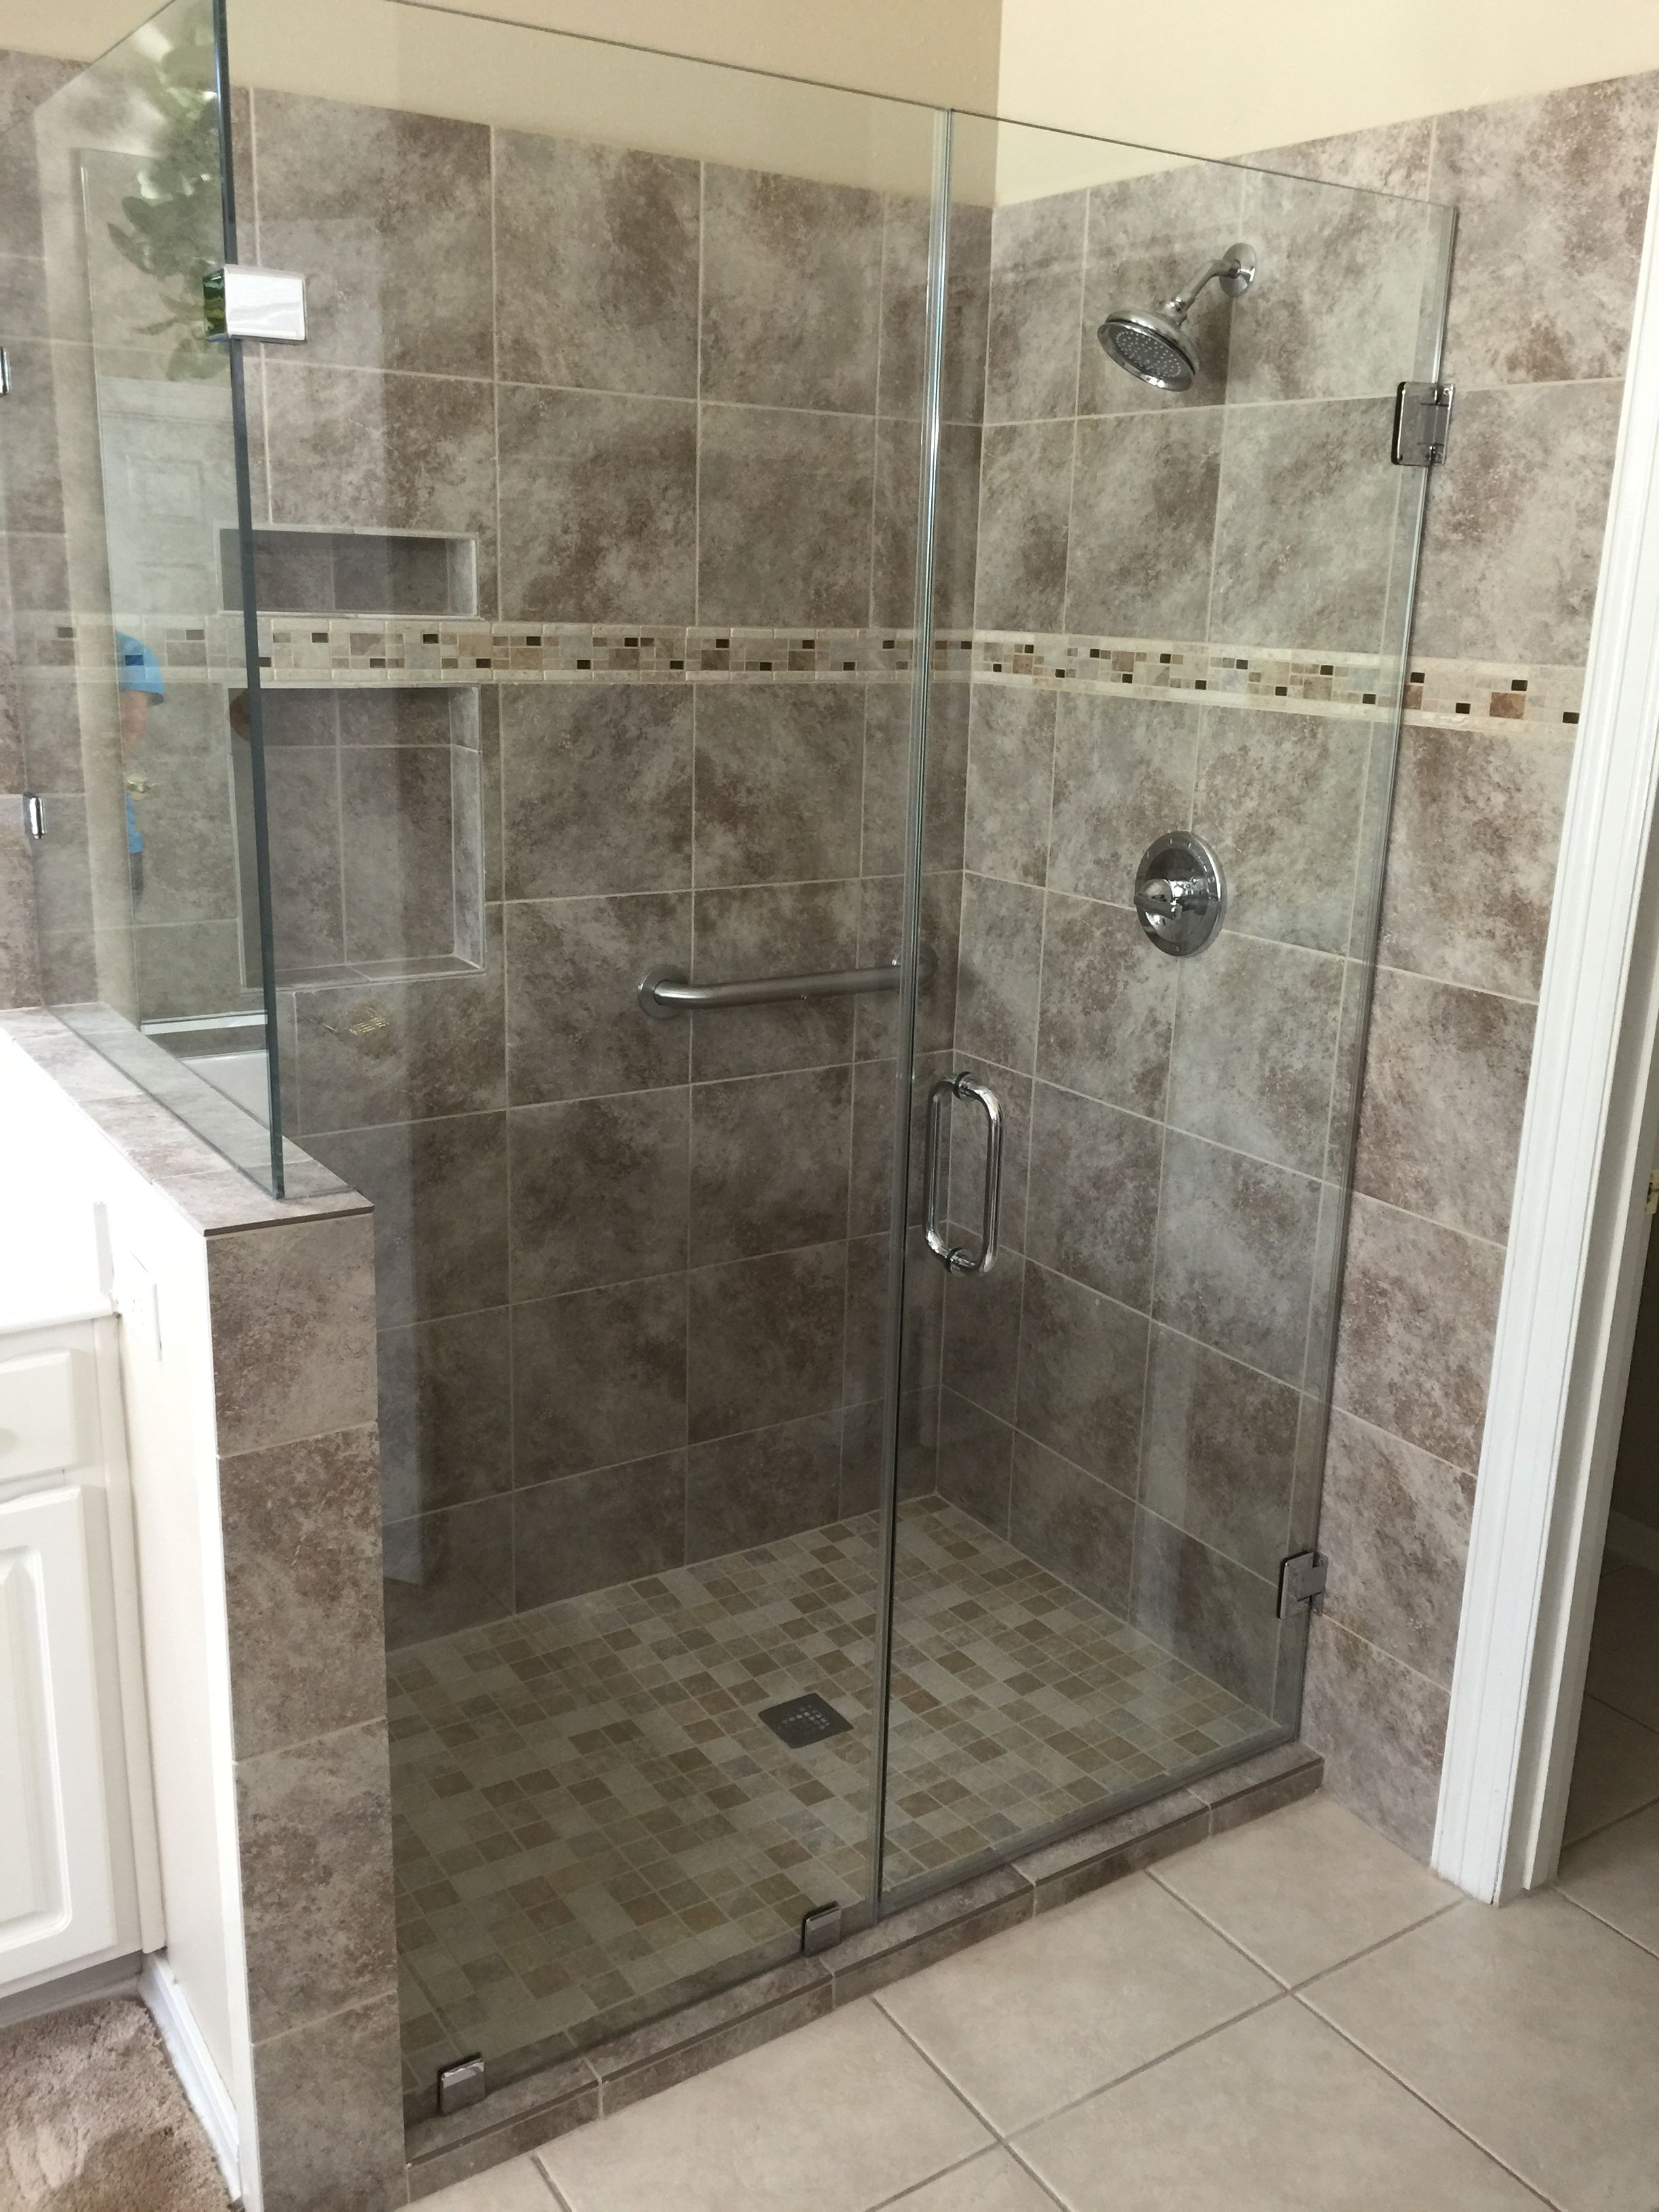 Home Remodeling And Construction | Bathroom design ...